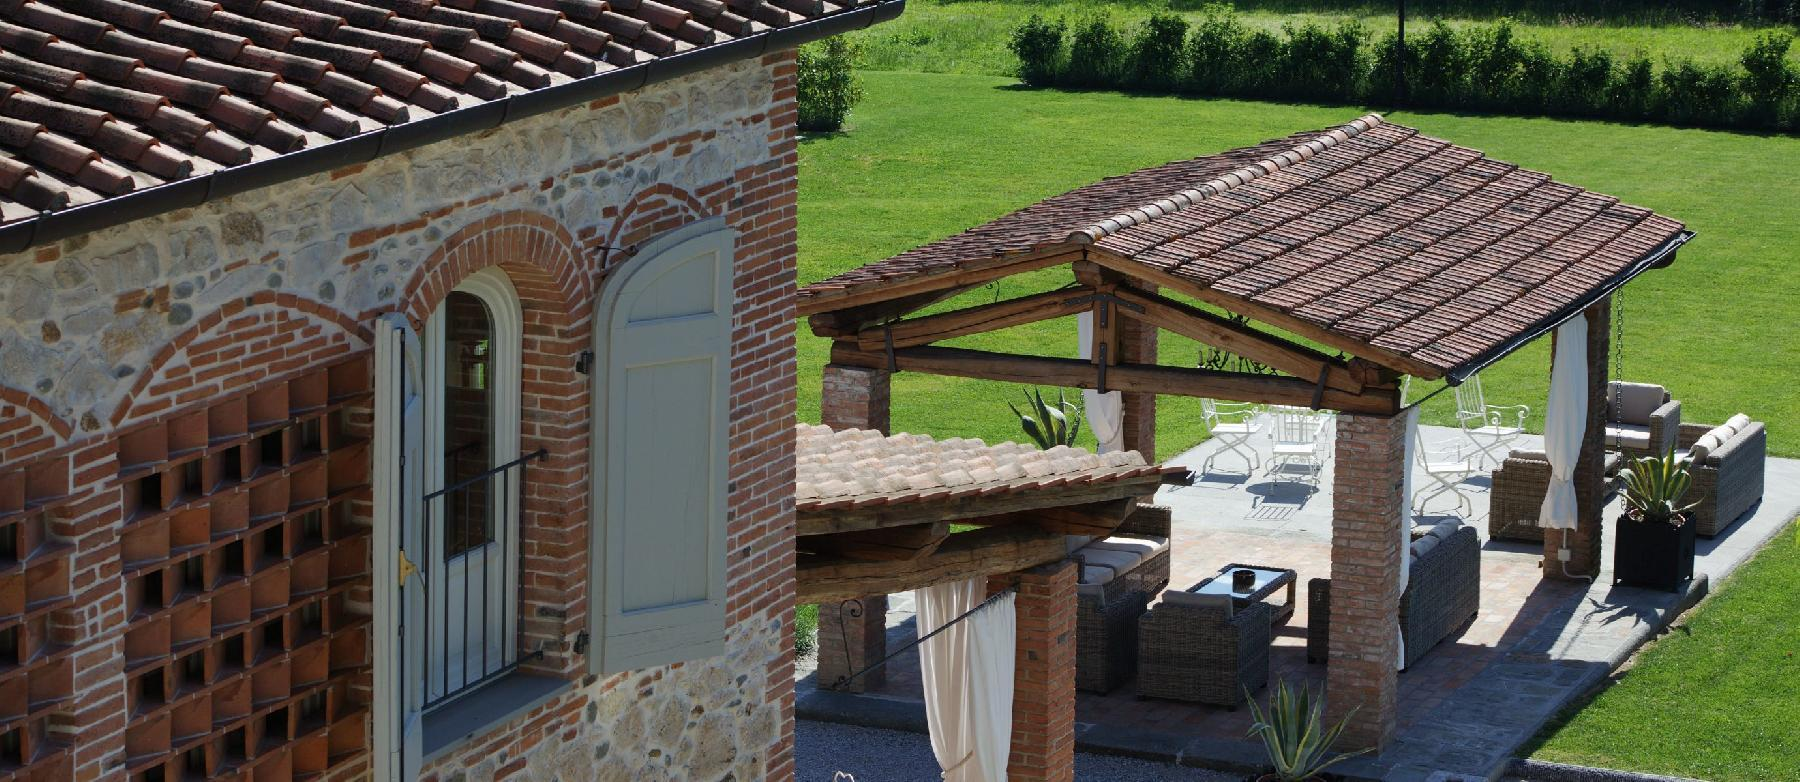 well-manicured lawn of Tuscany - The Tuscan Mansion luxury apartment